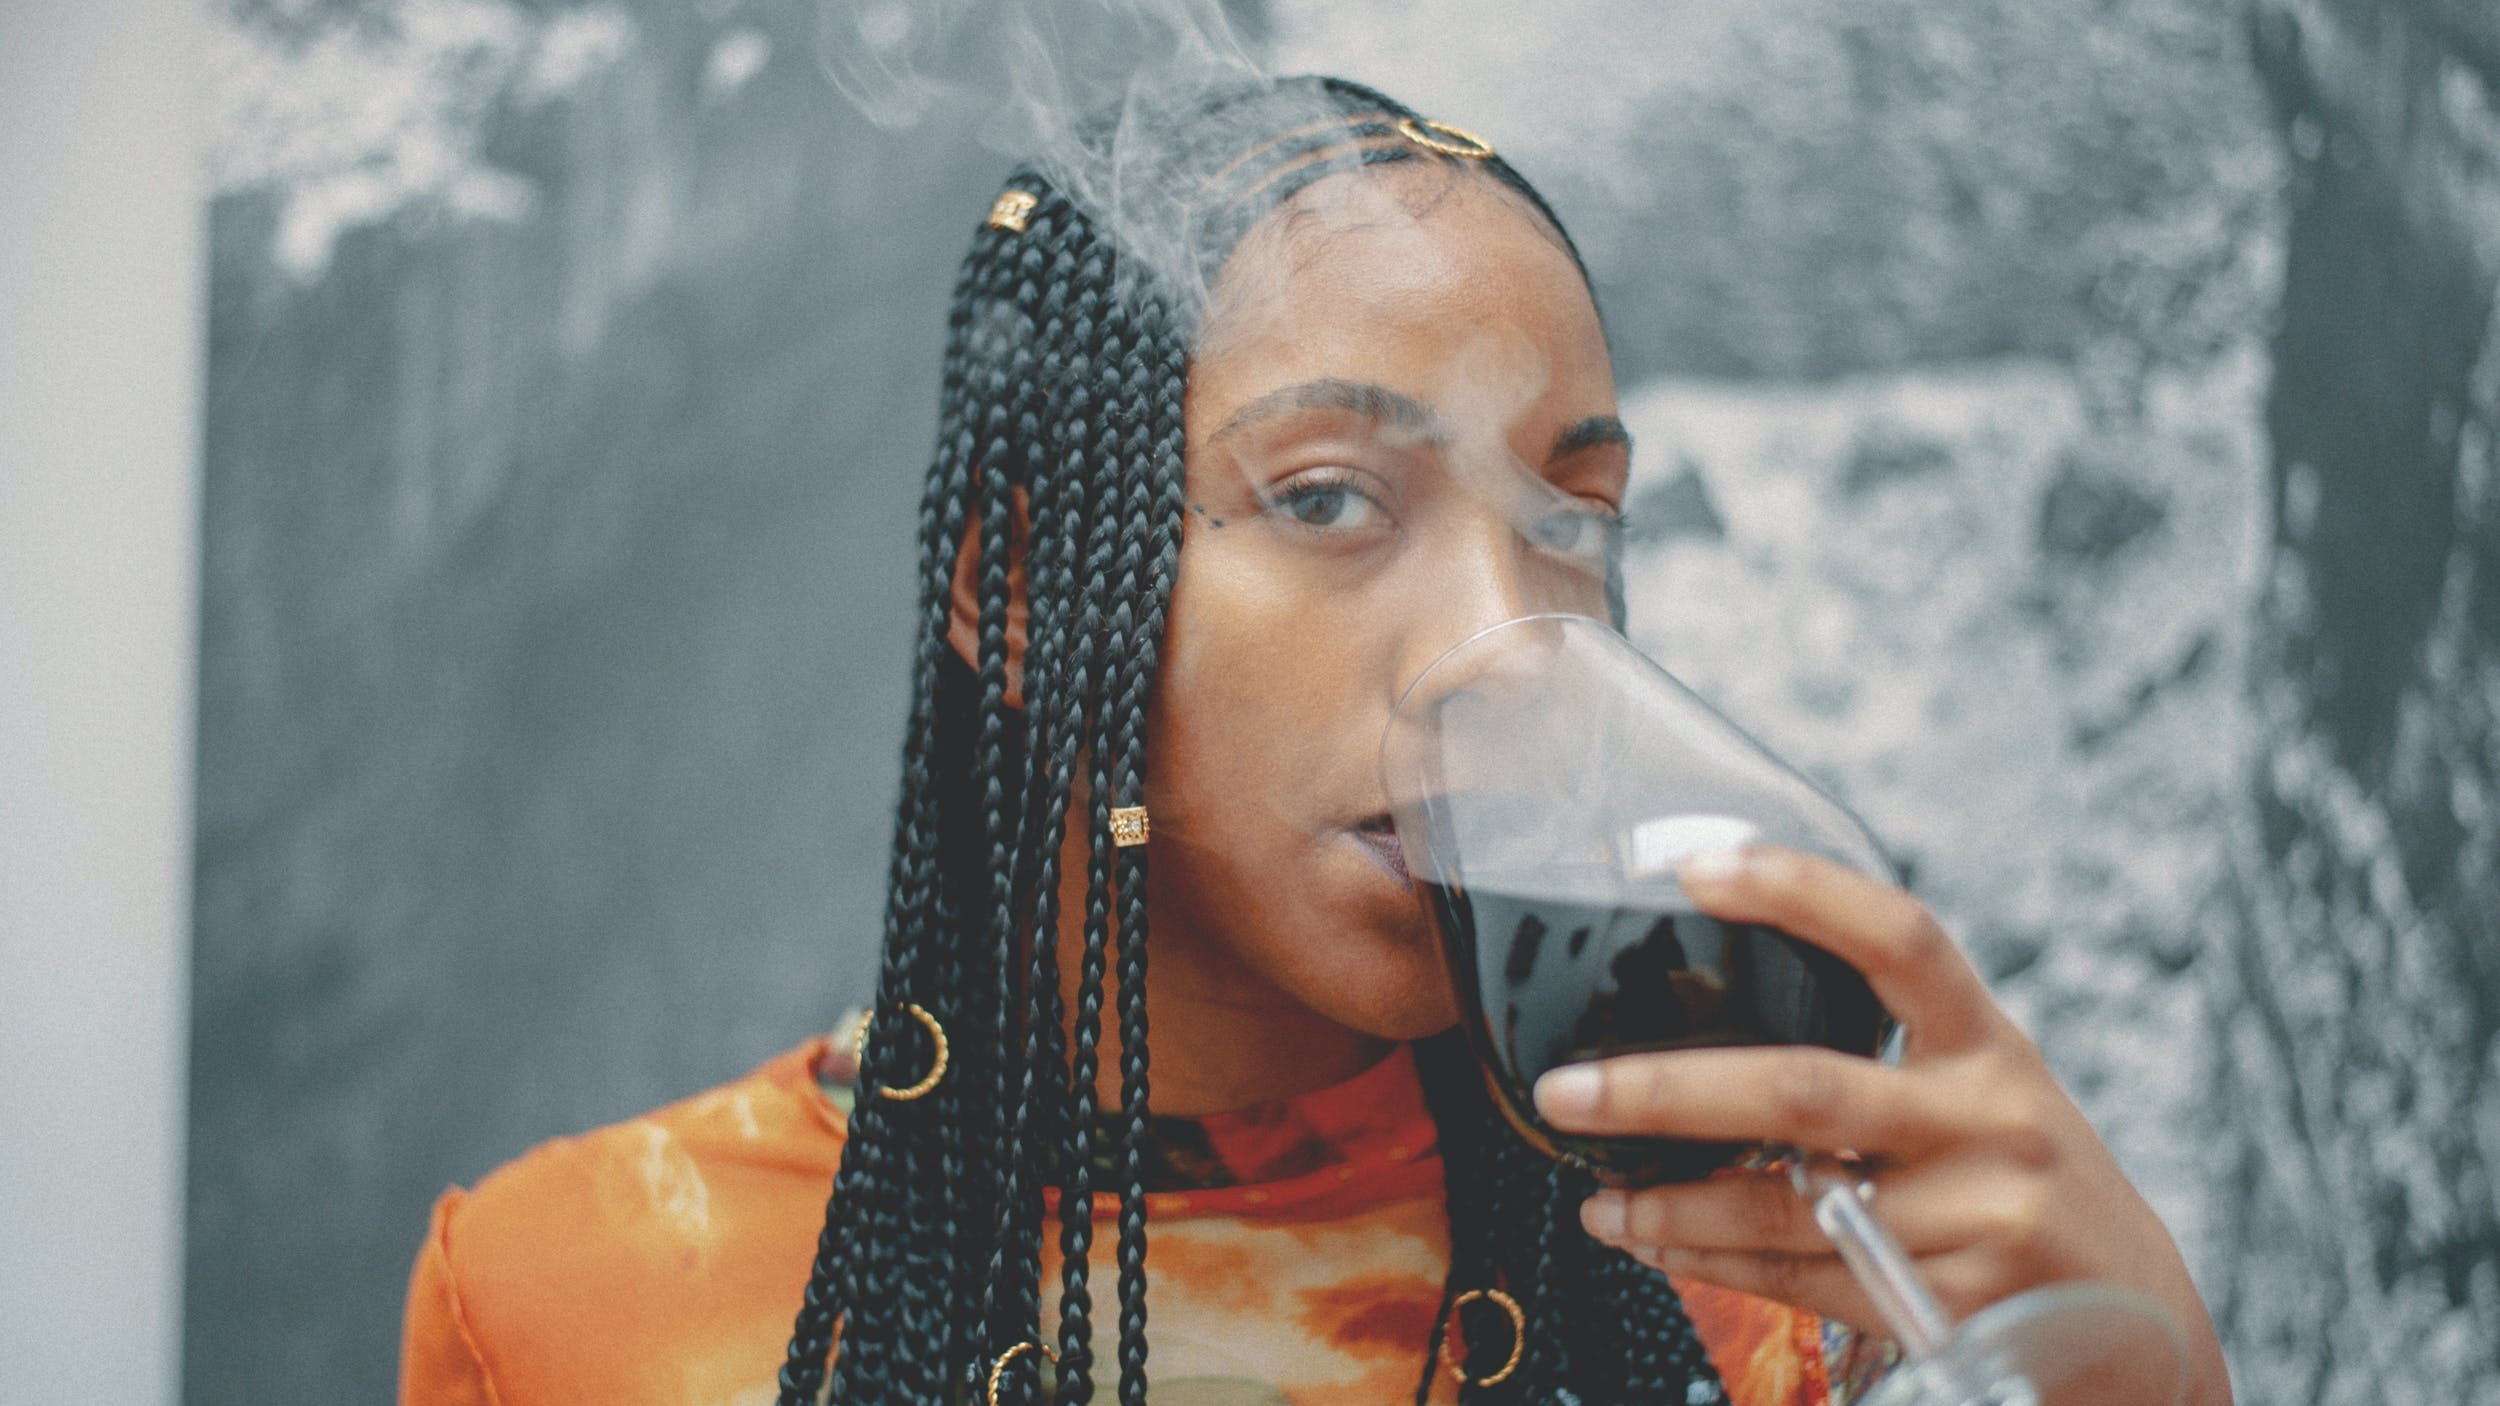 A woman takes a sip of weed wine in a cloud of smoke